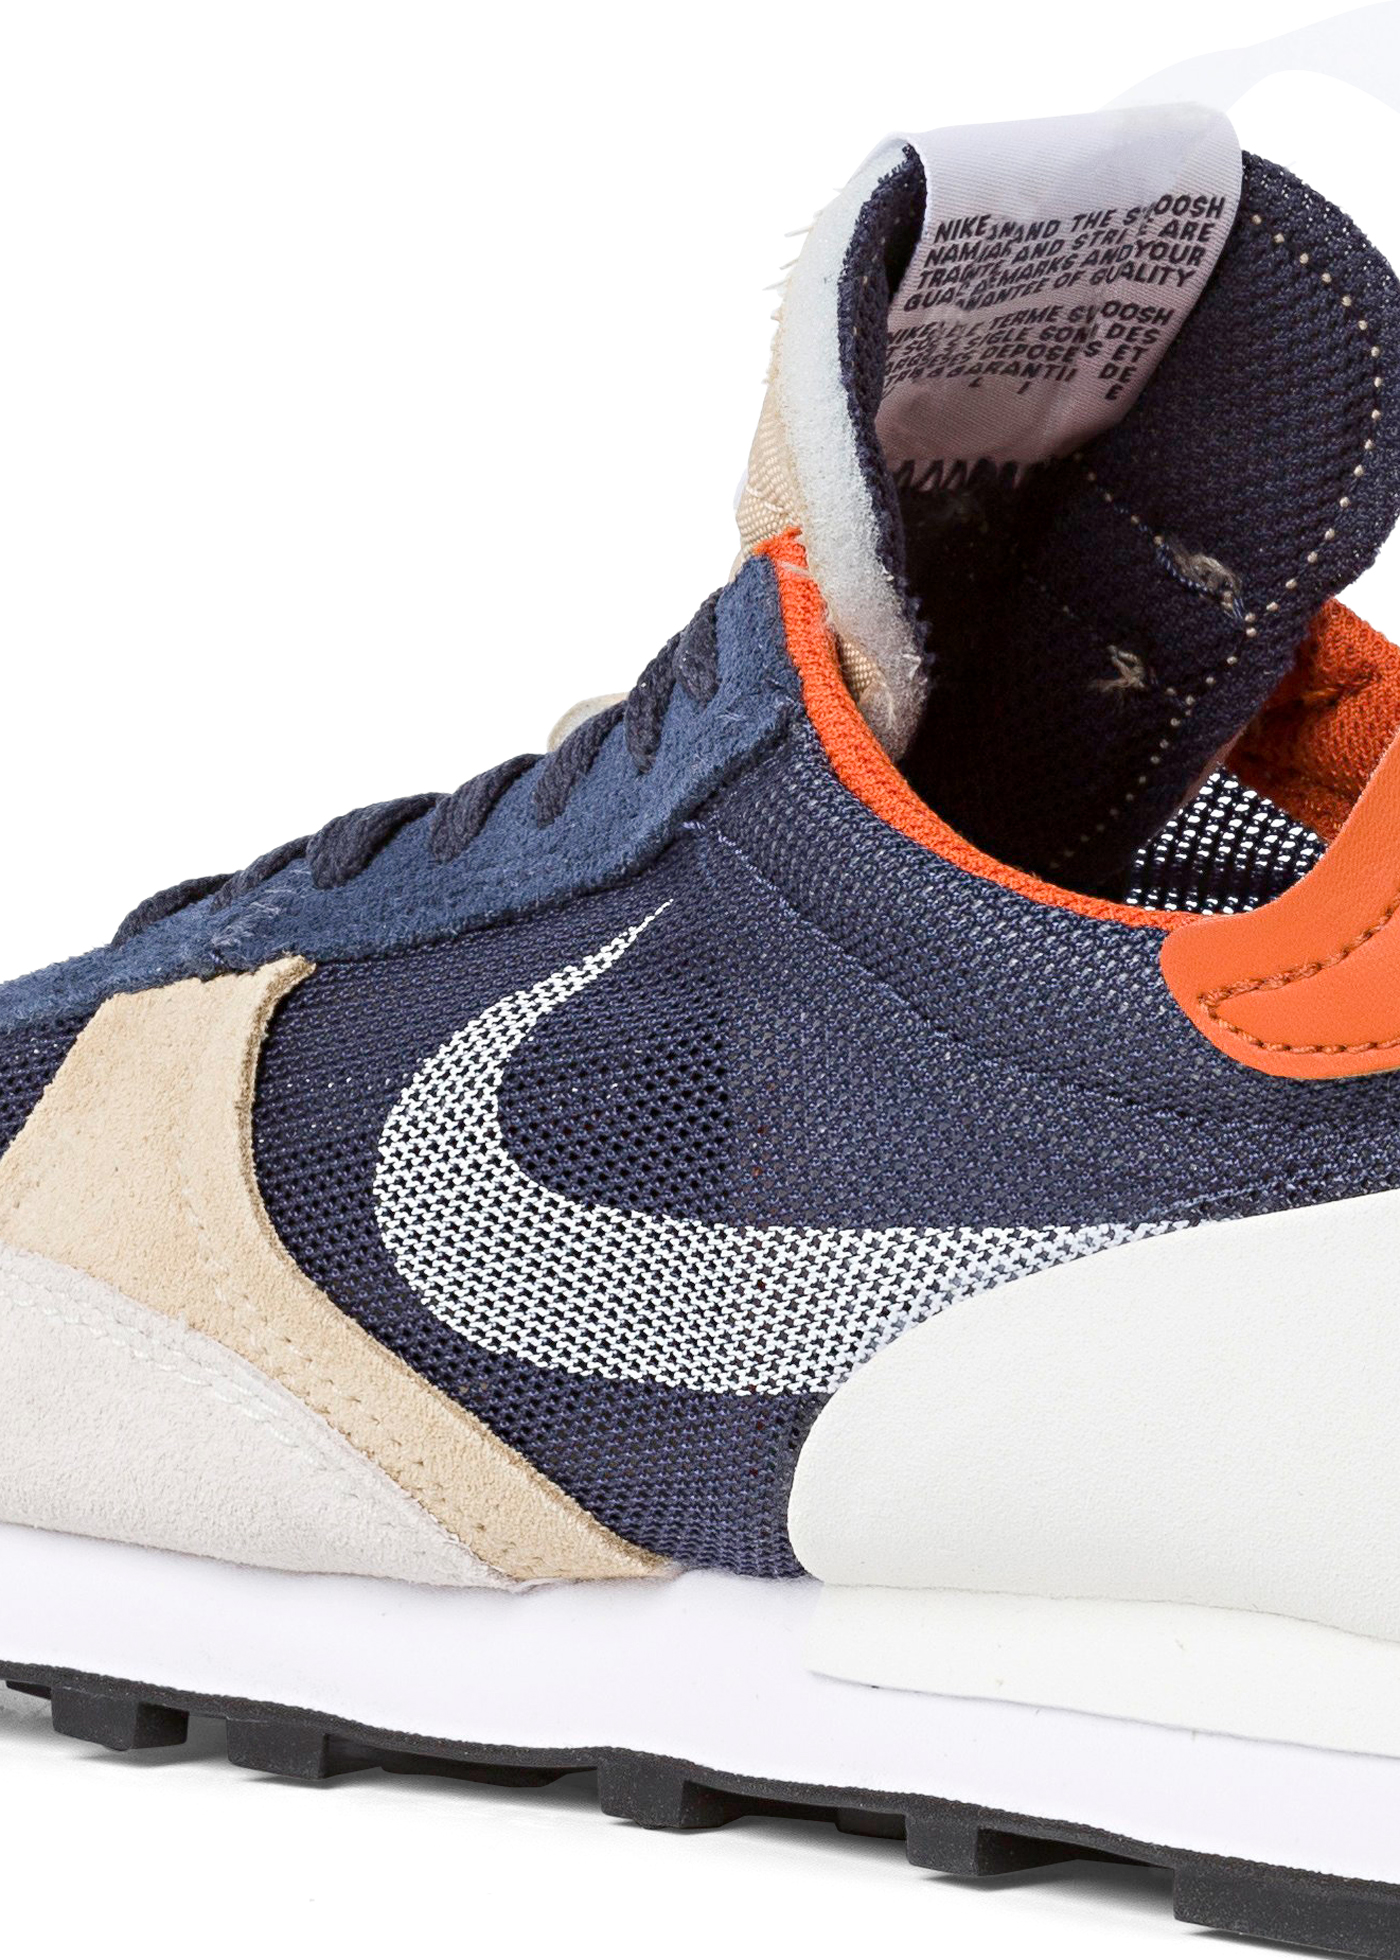 Nike 70's Type image number 3